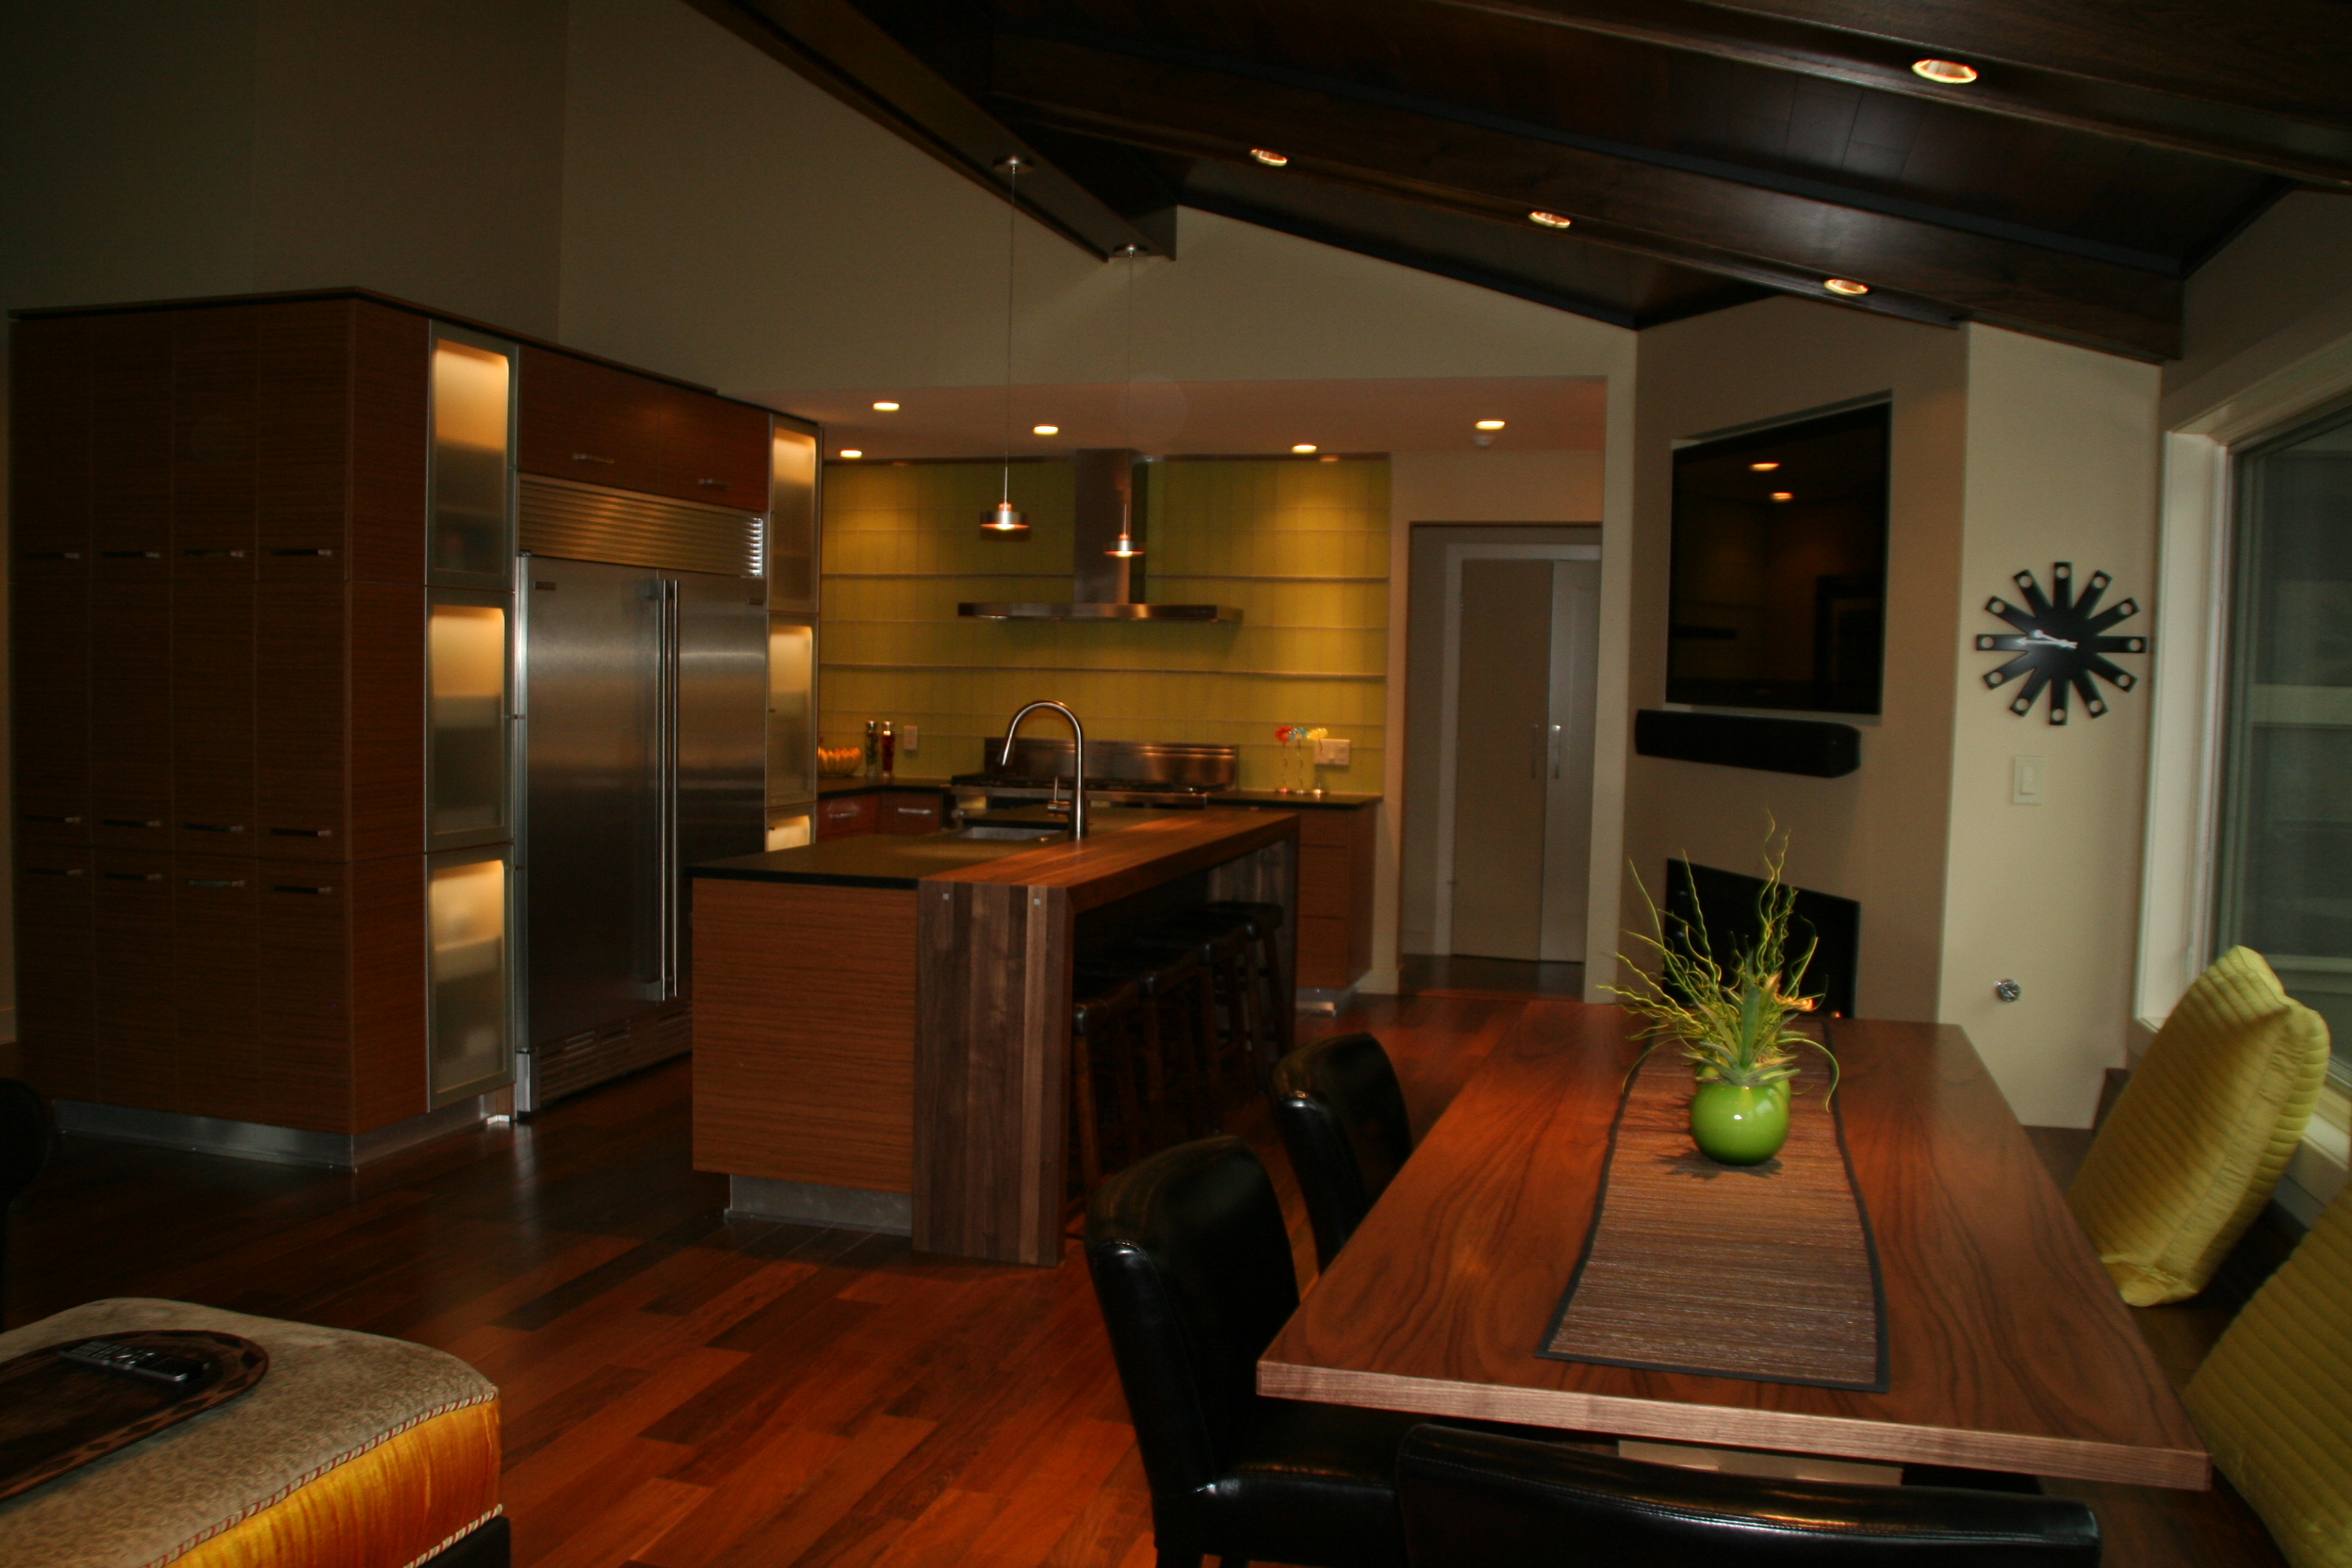 kitchen remodeling in rochester ny.JPG